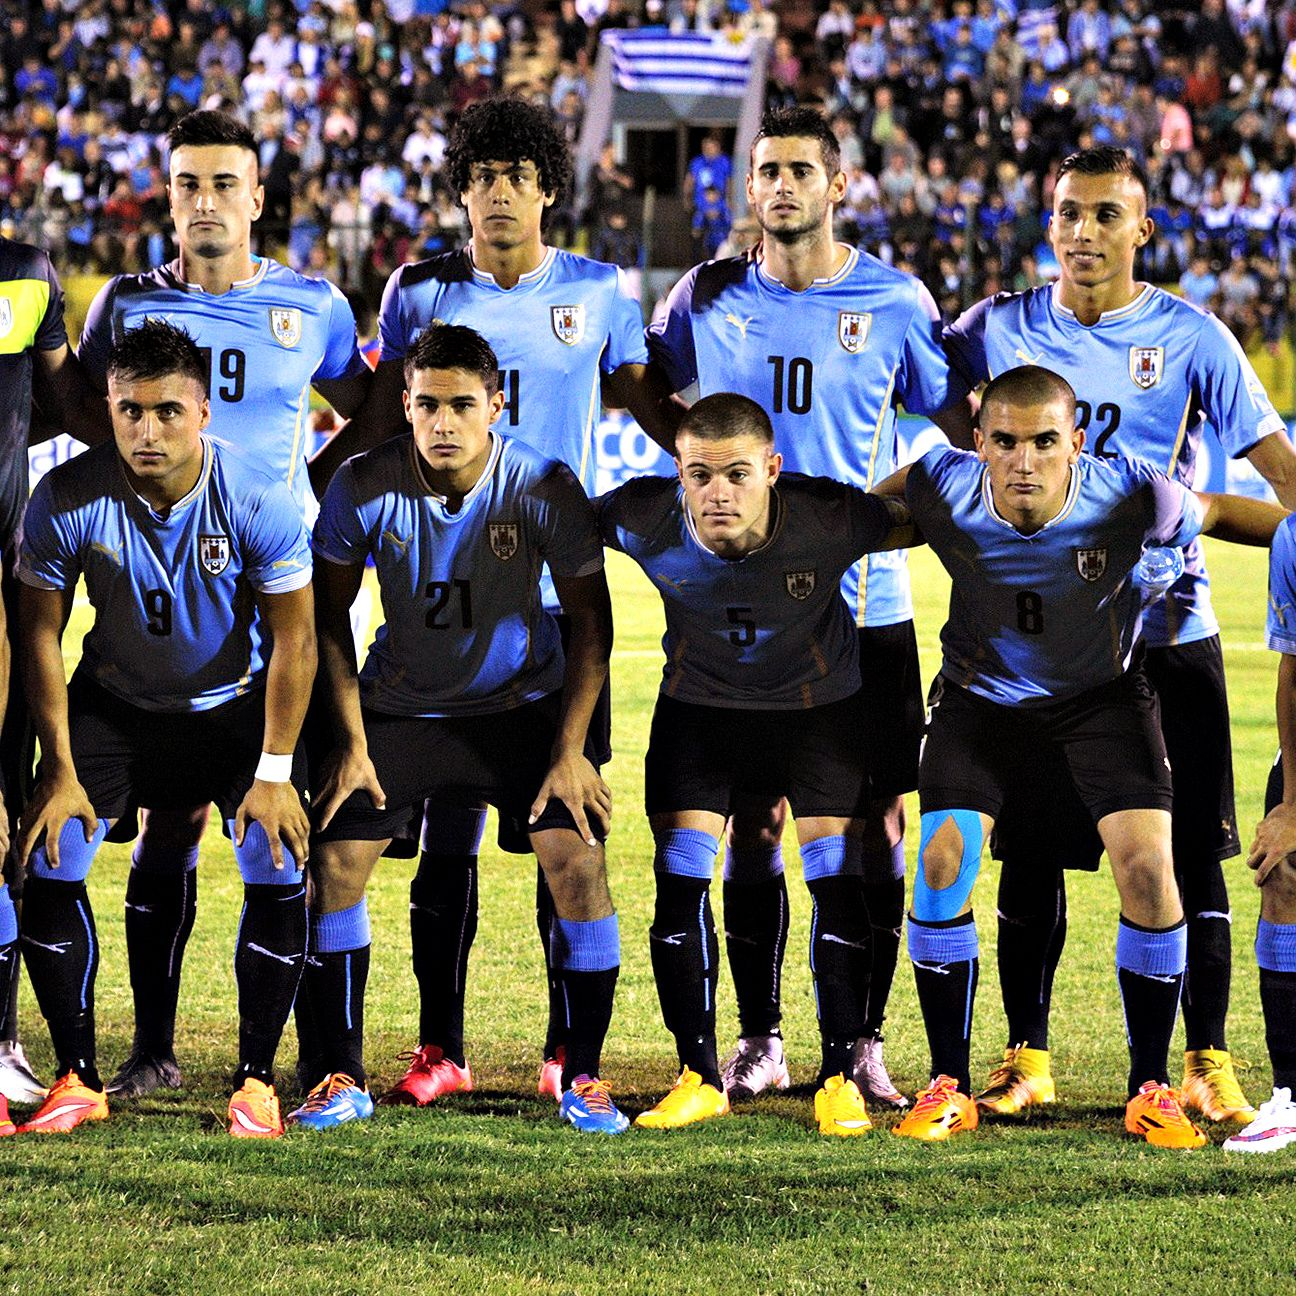 Hosts Uruguay will look to take down Brazil for a second time when the teams meet in Montevideo's famed Estadio Centenario.